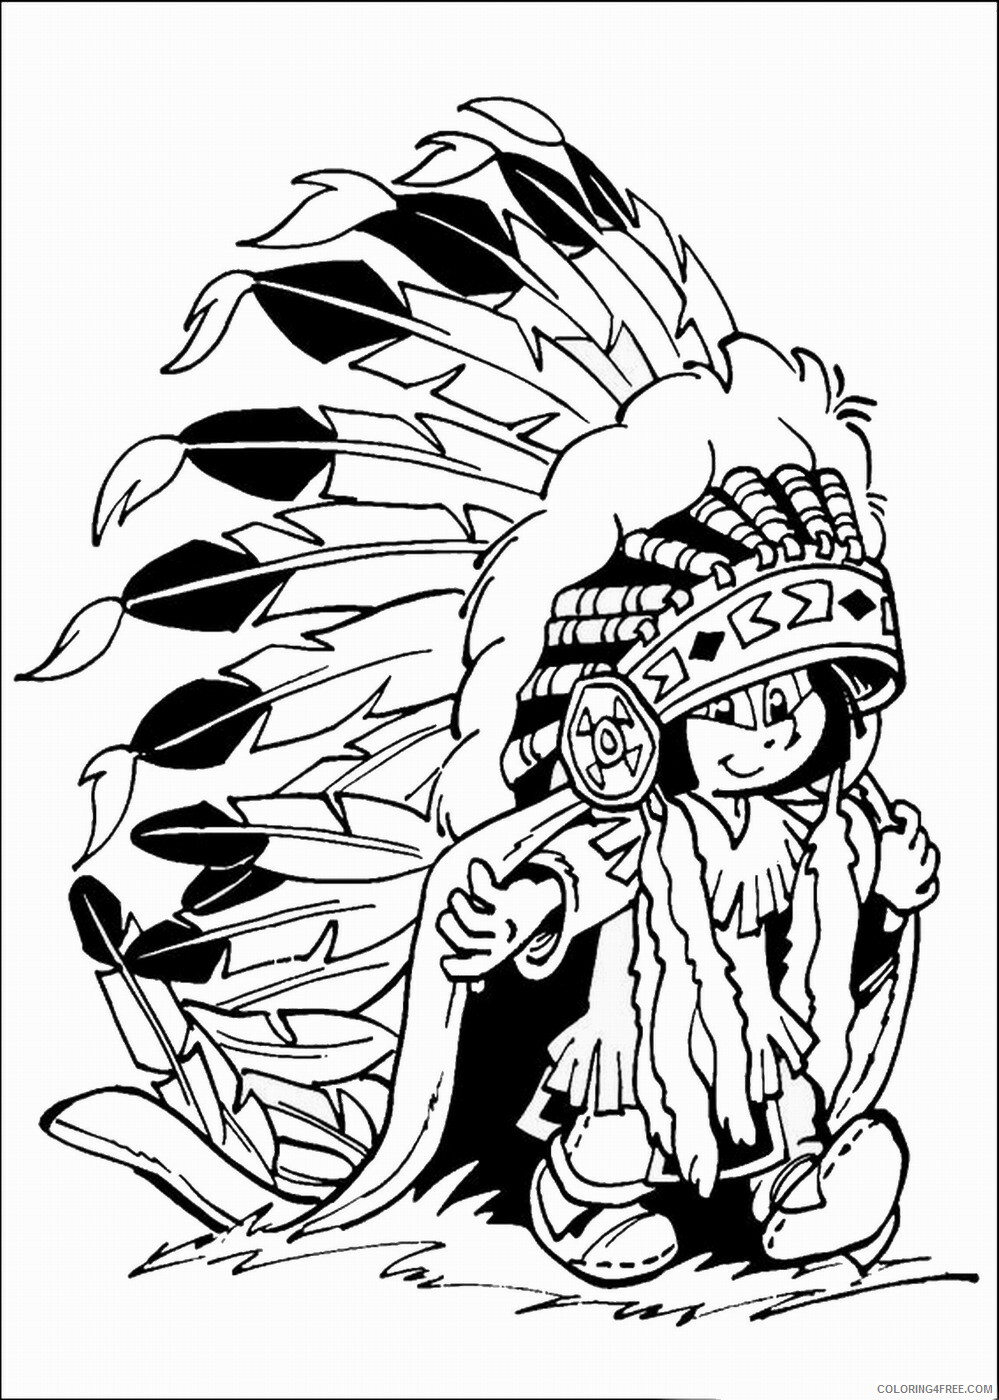 Indian Coloring Pages indians_22 Printable 2021 3548 Coloring4free